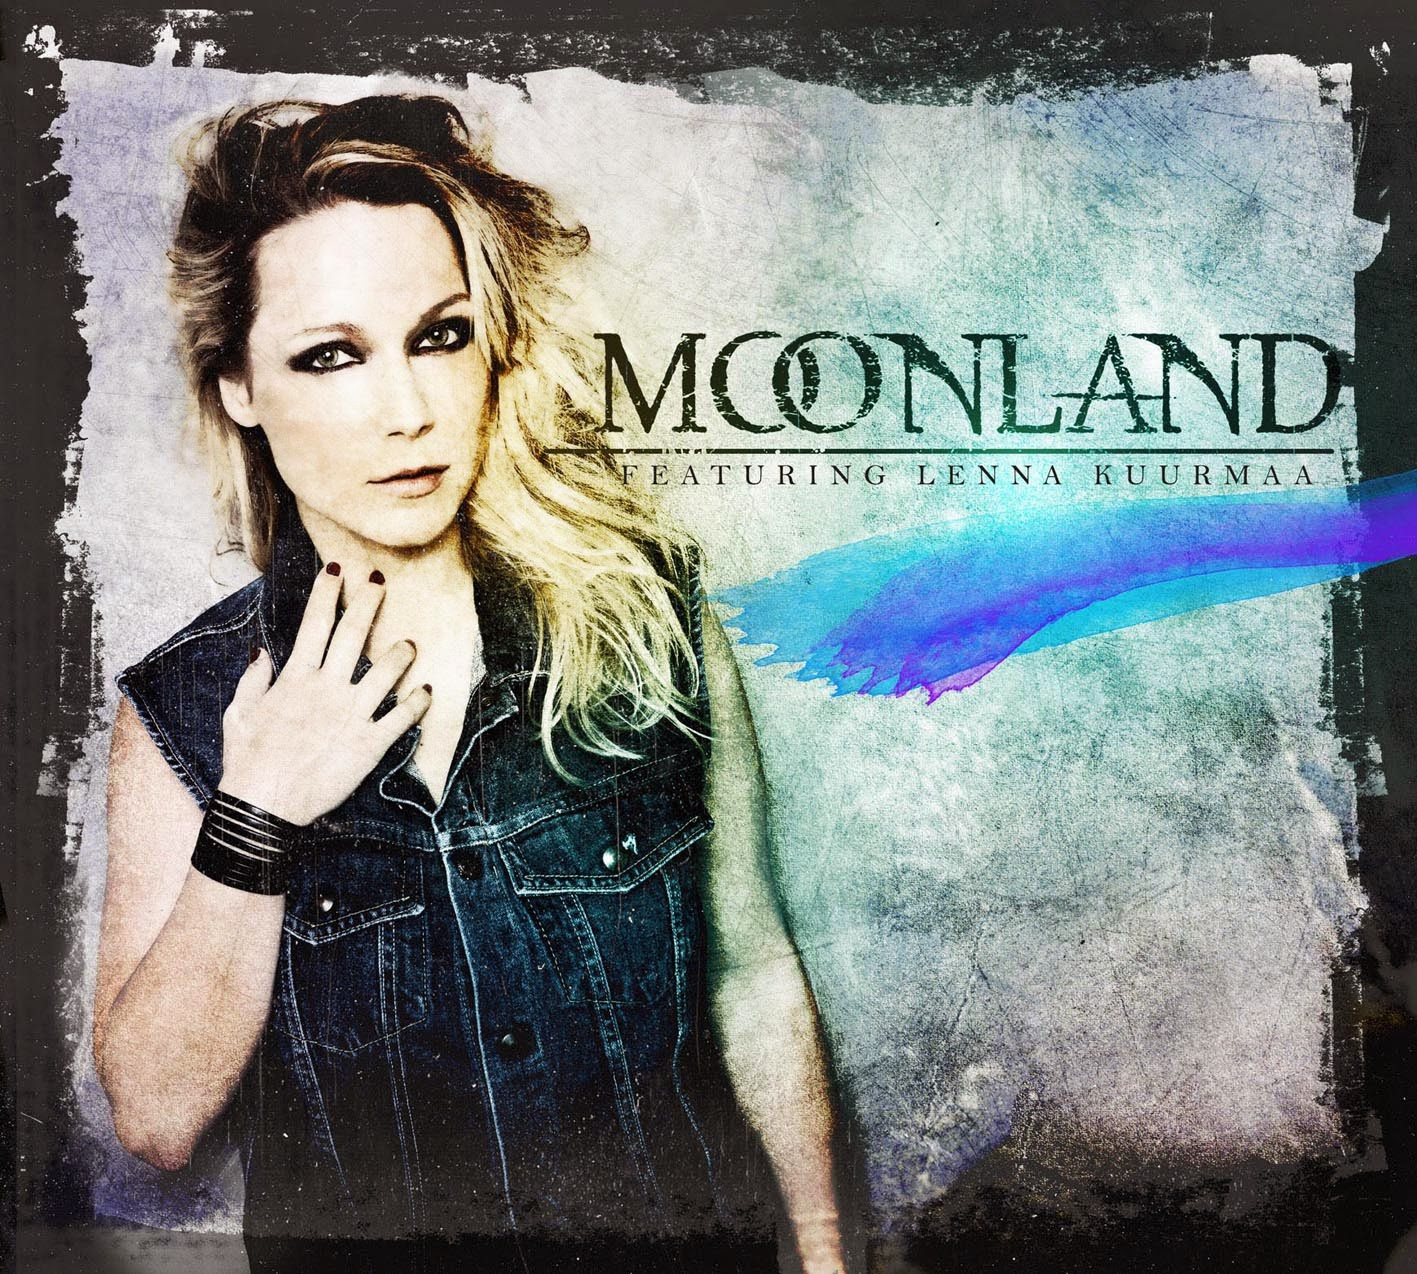 http://rock-and-metal-4-you.blogspot.de/2014/09/cd-review-moonland-feat-lenna-kuurmaa.html